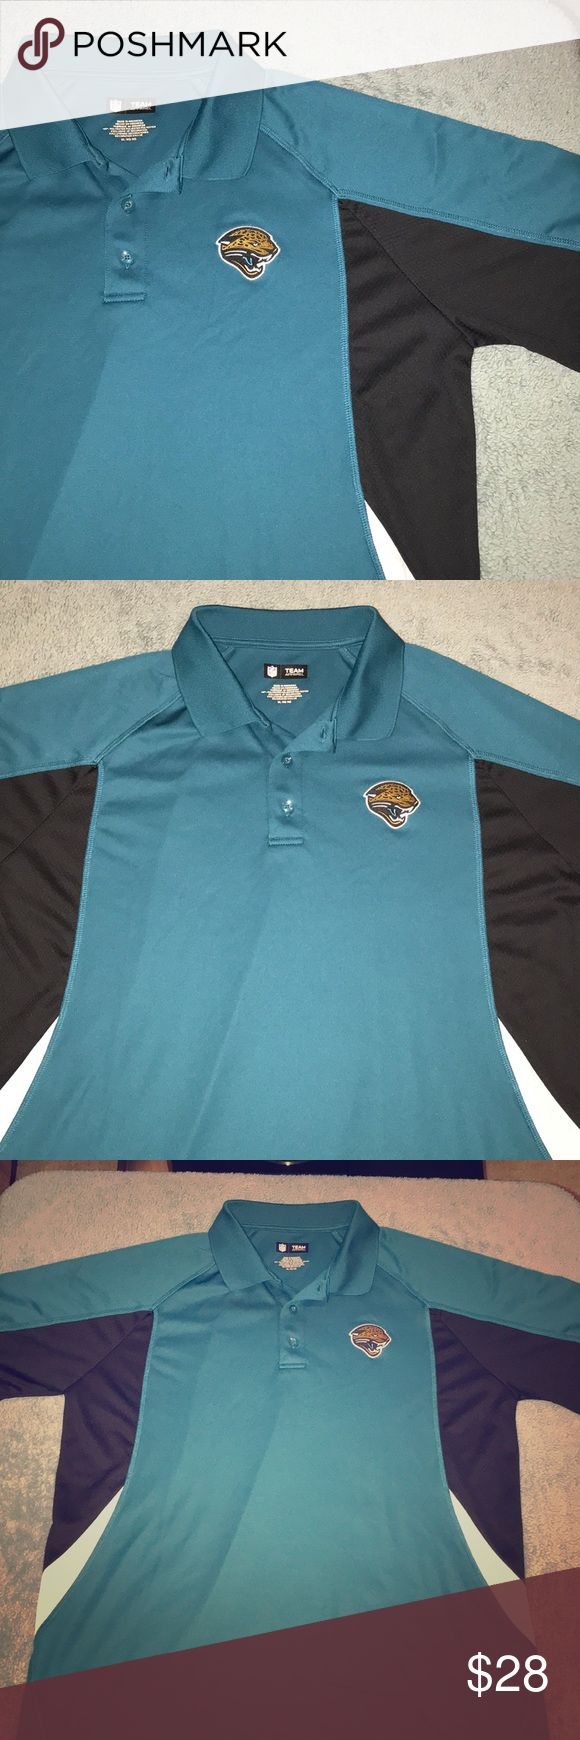 NWOT NFL Jacksonville Jaguars AFC Men's Polo For sale is a Size XL, NWOT NFL Jacksonville Jaguars AFC Men's Polo. 100% polyester, Teal in color and features Jaguars and AFC patches across left chest and sleeve. NFL Shirts Polos